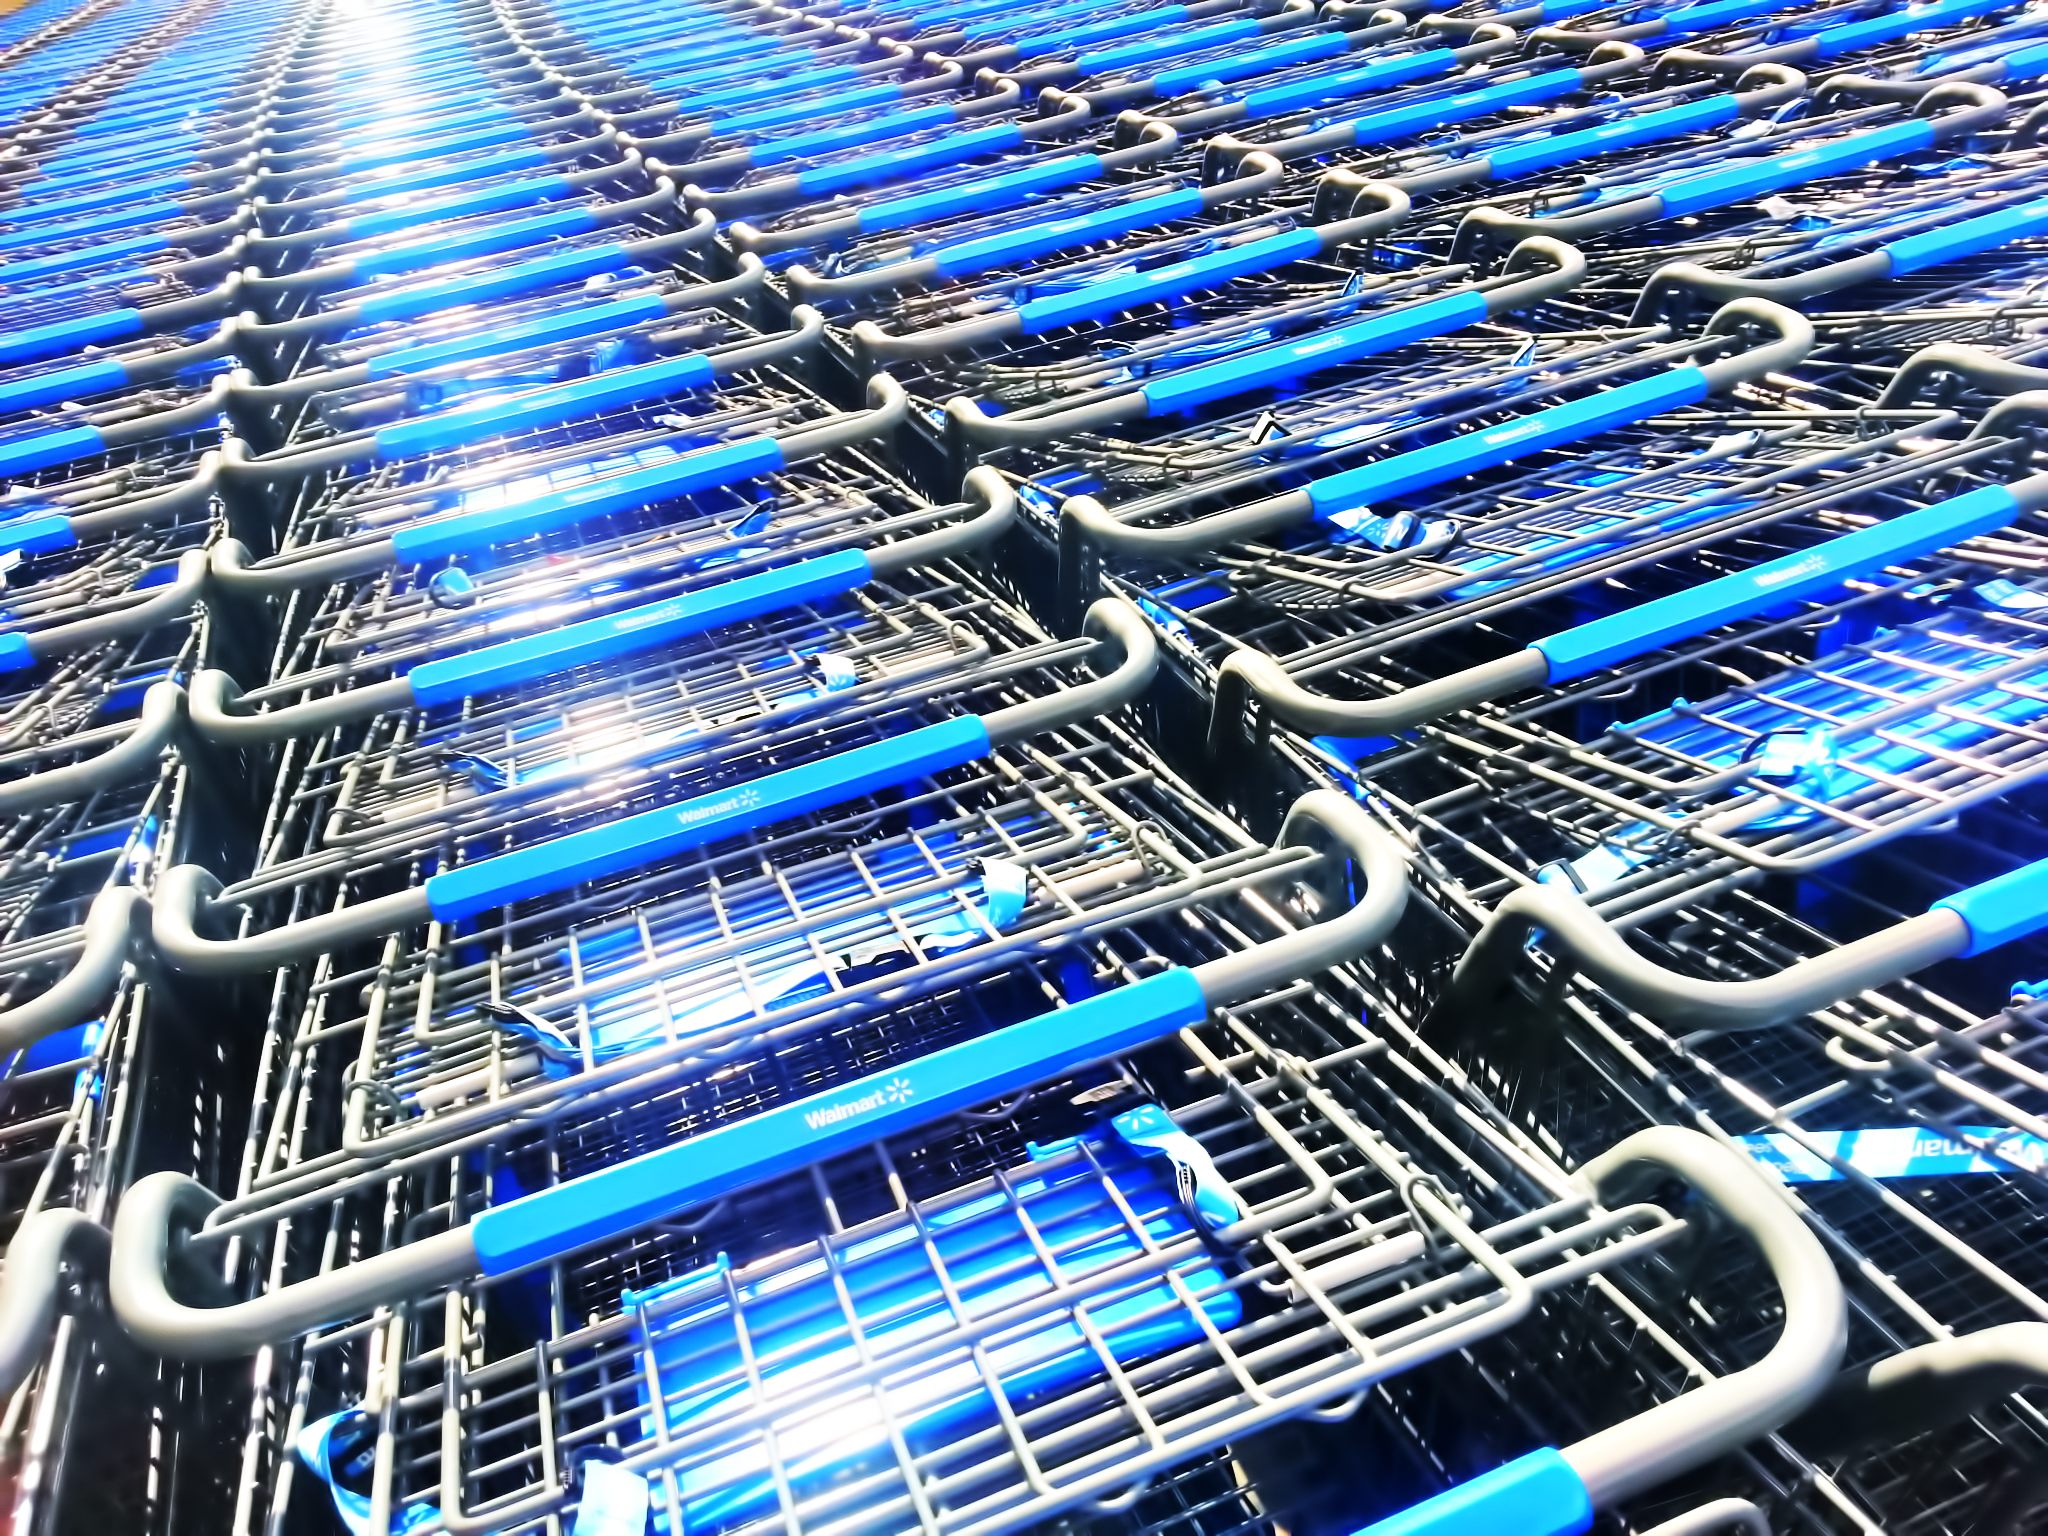 The Dirty Little Secret Of The Shopping Cart